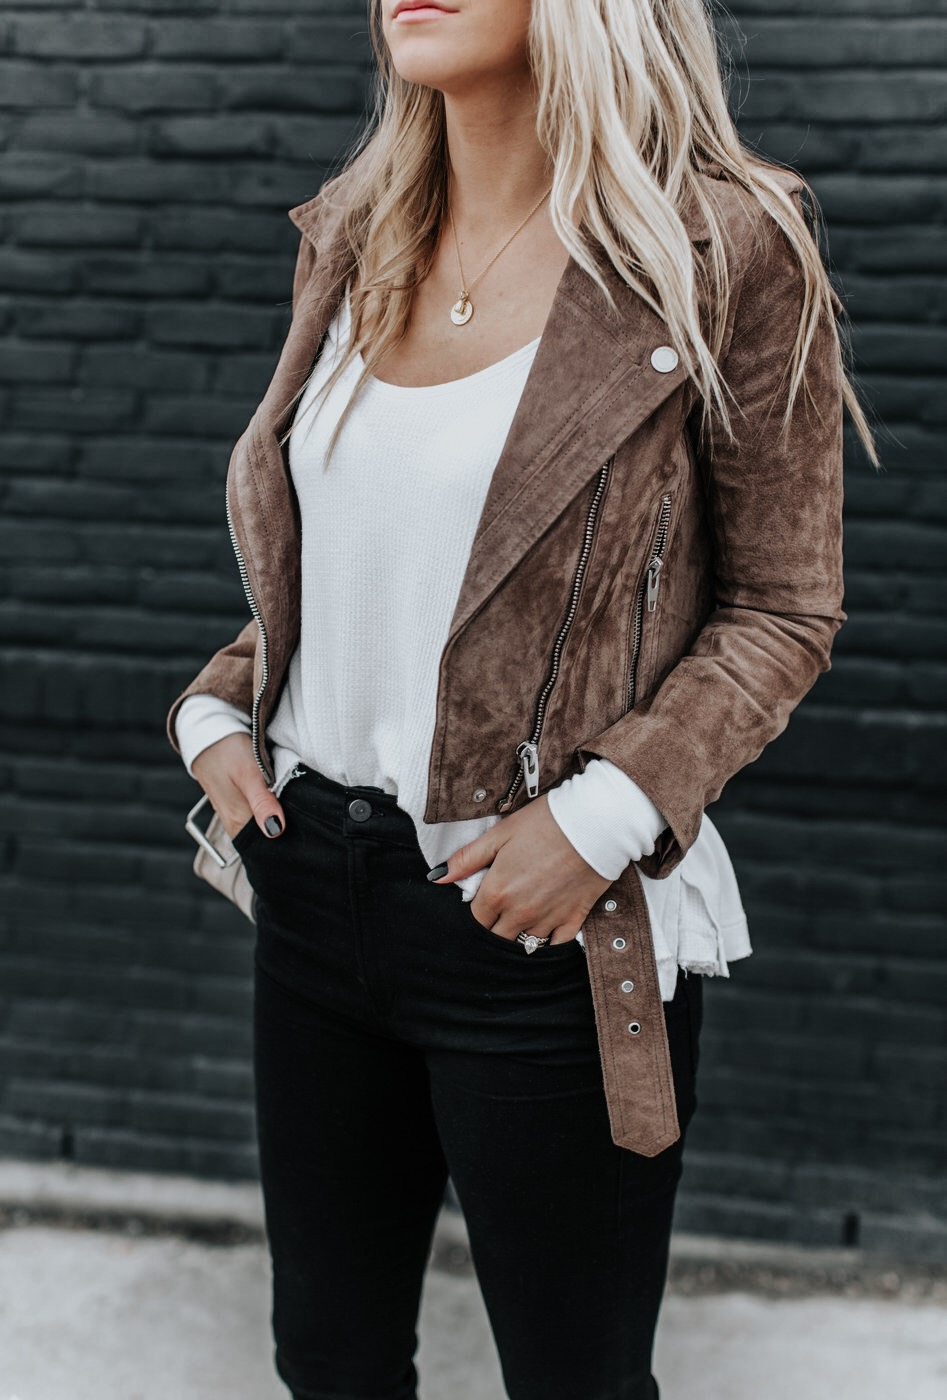 1 blonde woman wearing suede jacket for nordstrom anniversary sale 2019